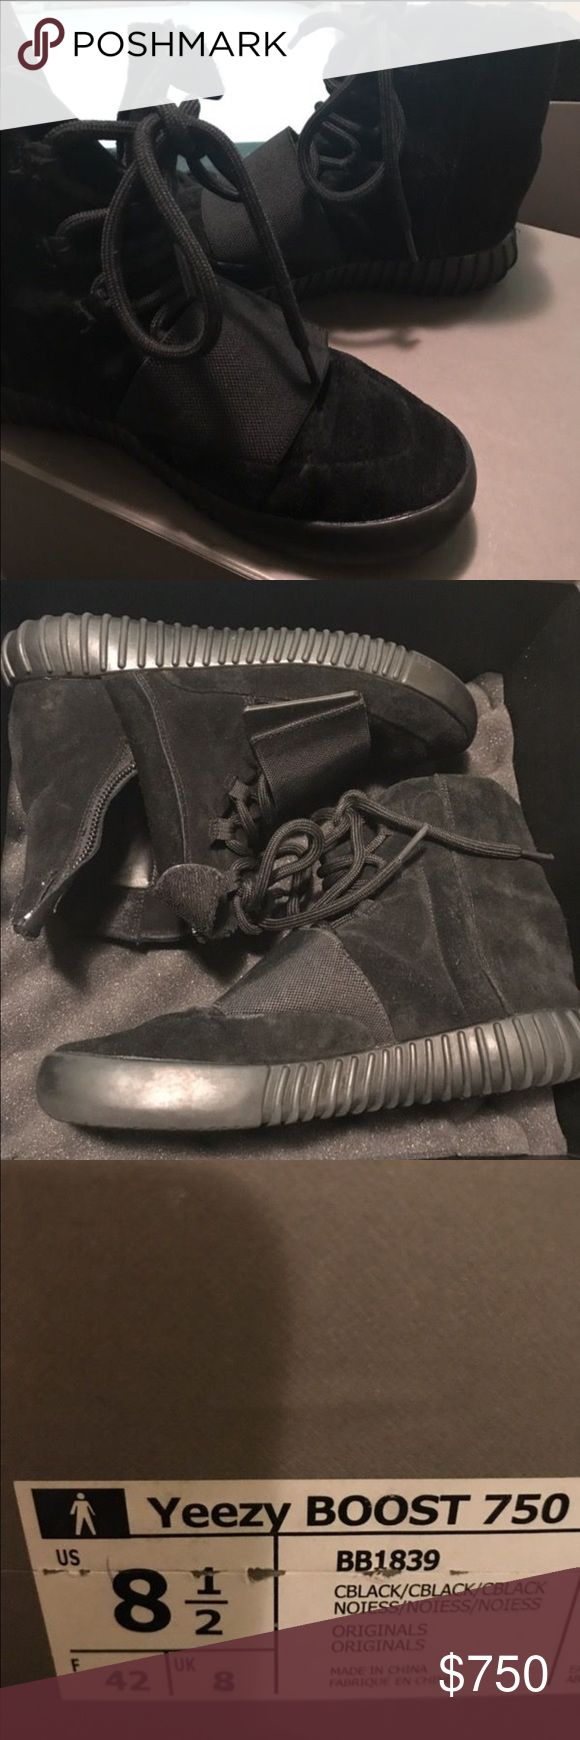 Yeezy Boost Authentic Yeezy Boost 750 **zipper is broken on both. Price reflects, can be repaired at your local cleaners/ shoe shop) Yeezy Shoes Sneakers